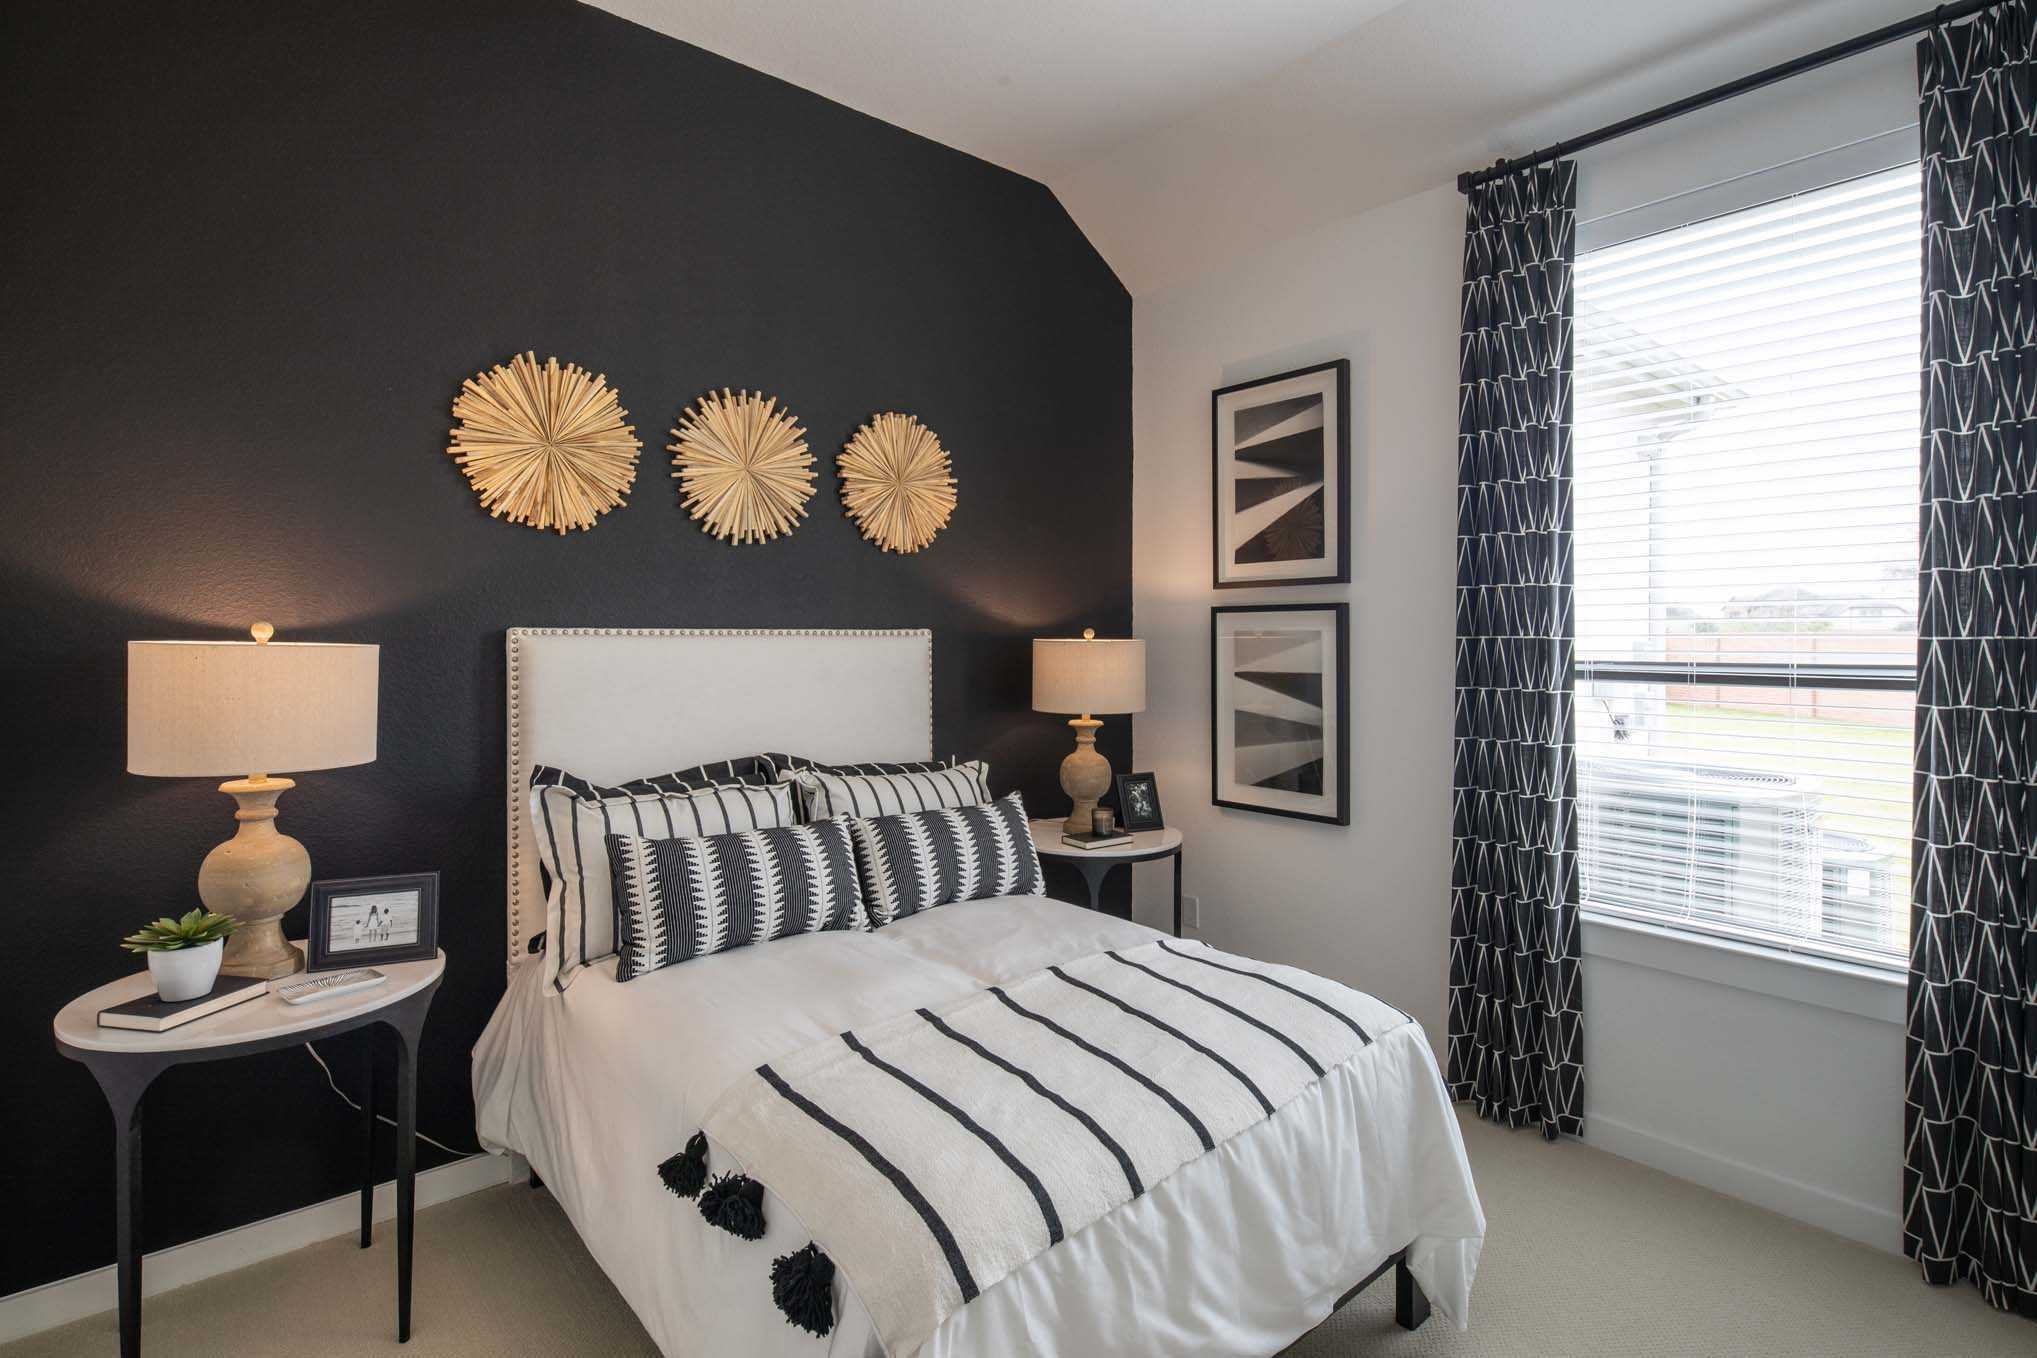 Bedroom featured in the Plan Davenport By Highland Homes in San Antonio, TX